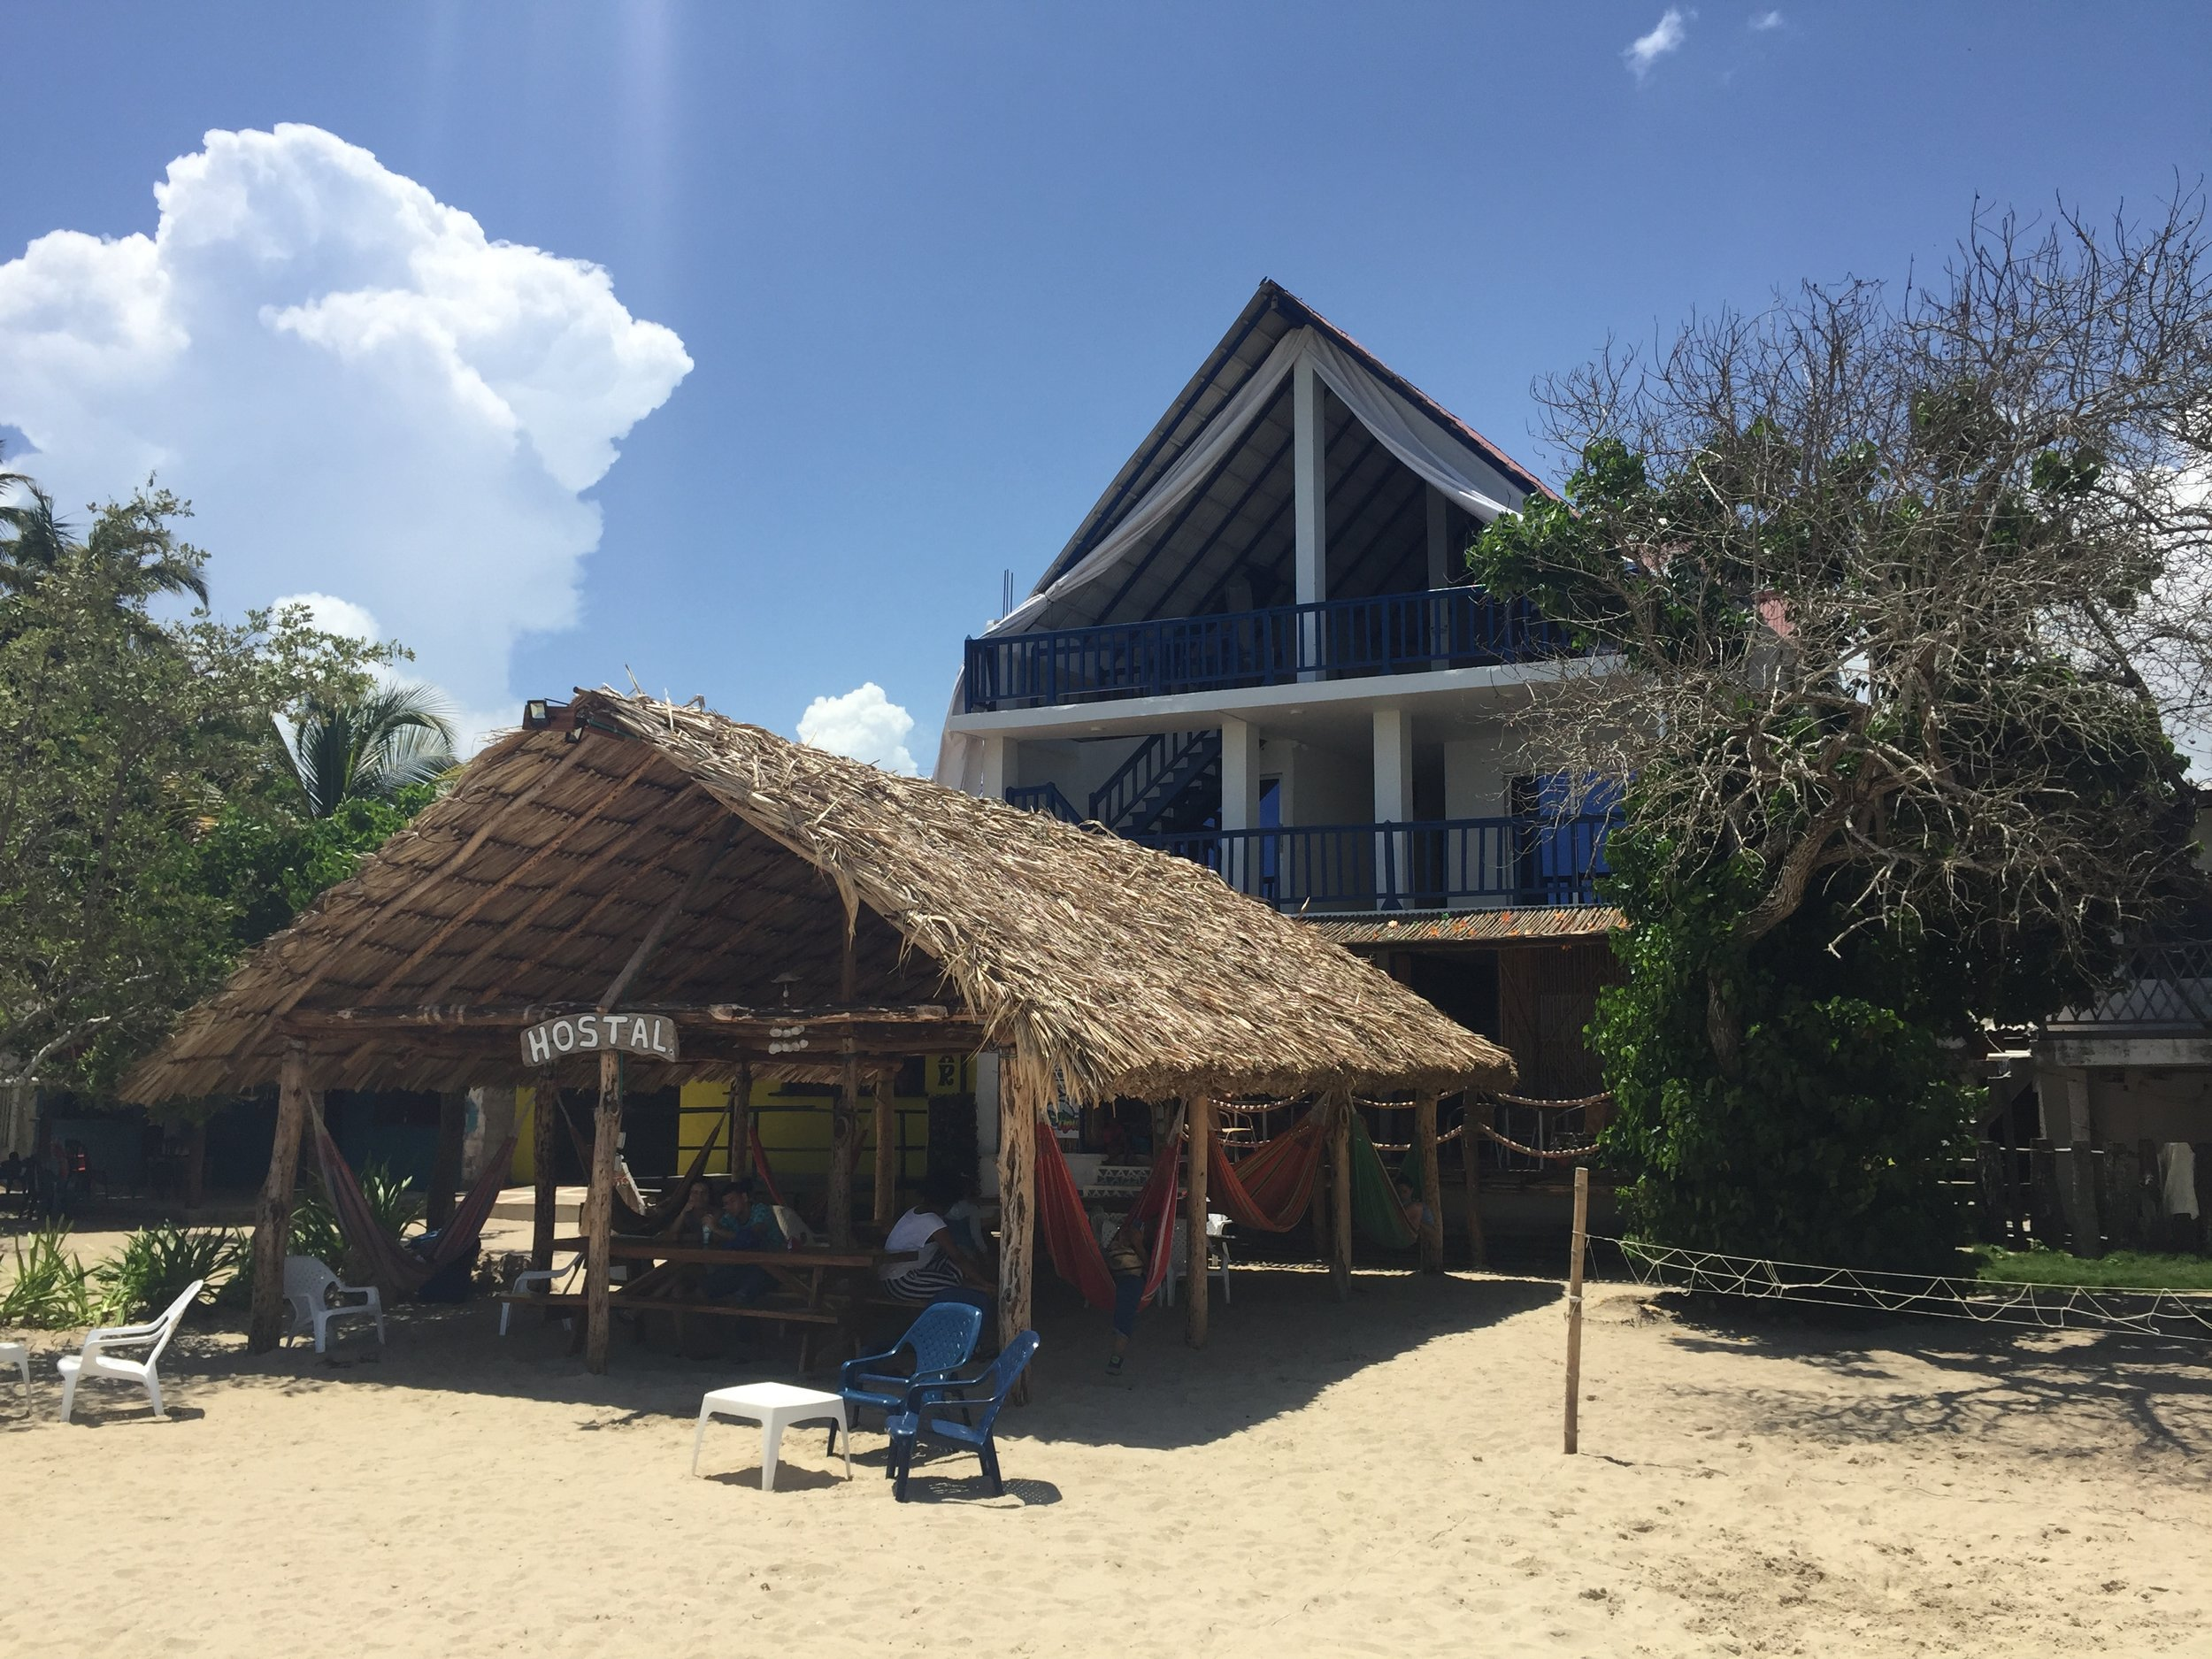 In Rincon, we will stay in private rooms at the simple oceanfront Beach Hostel